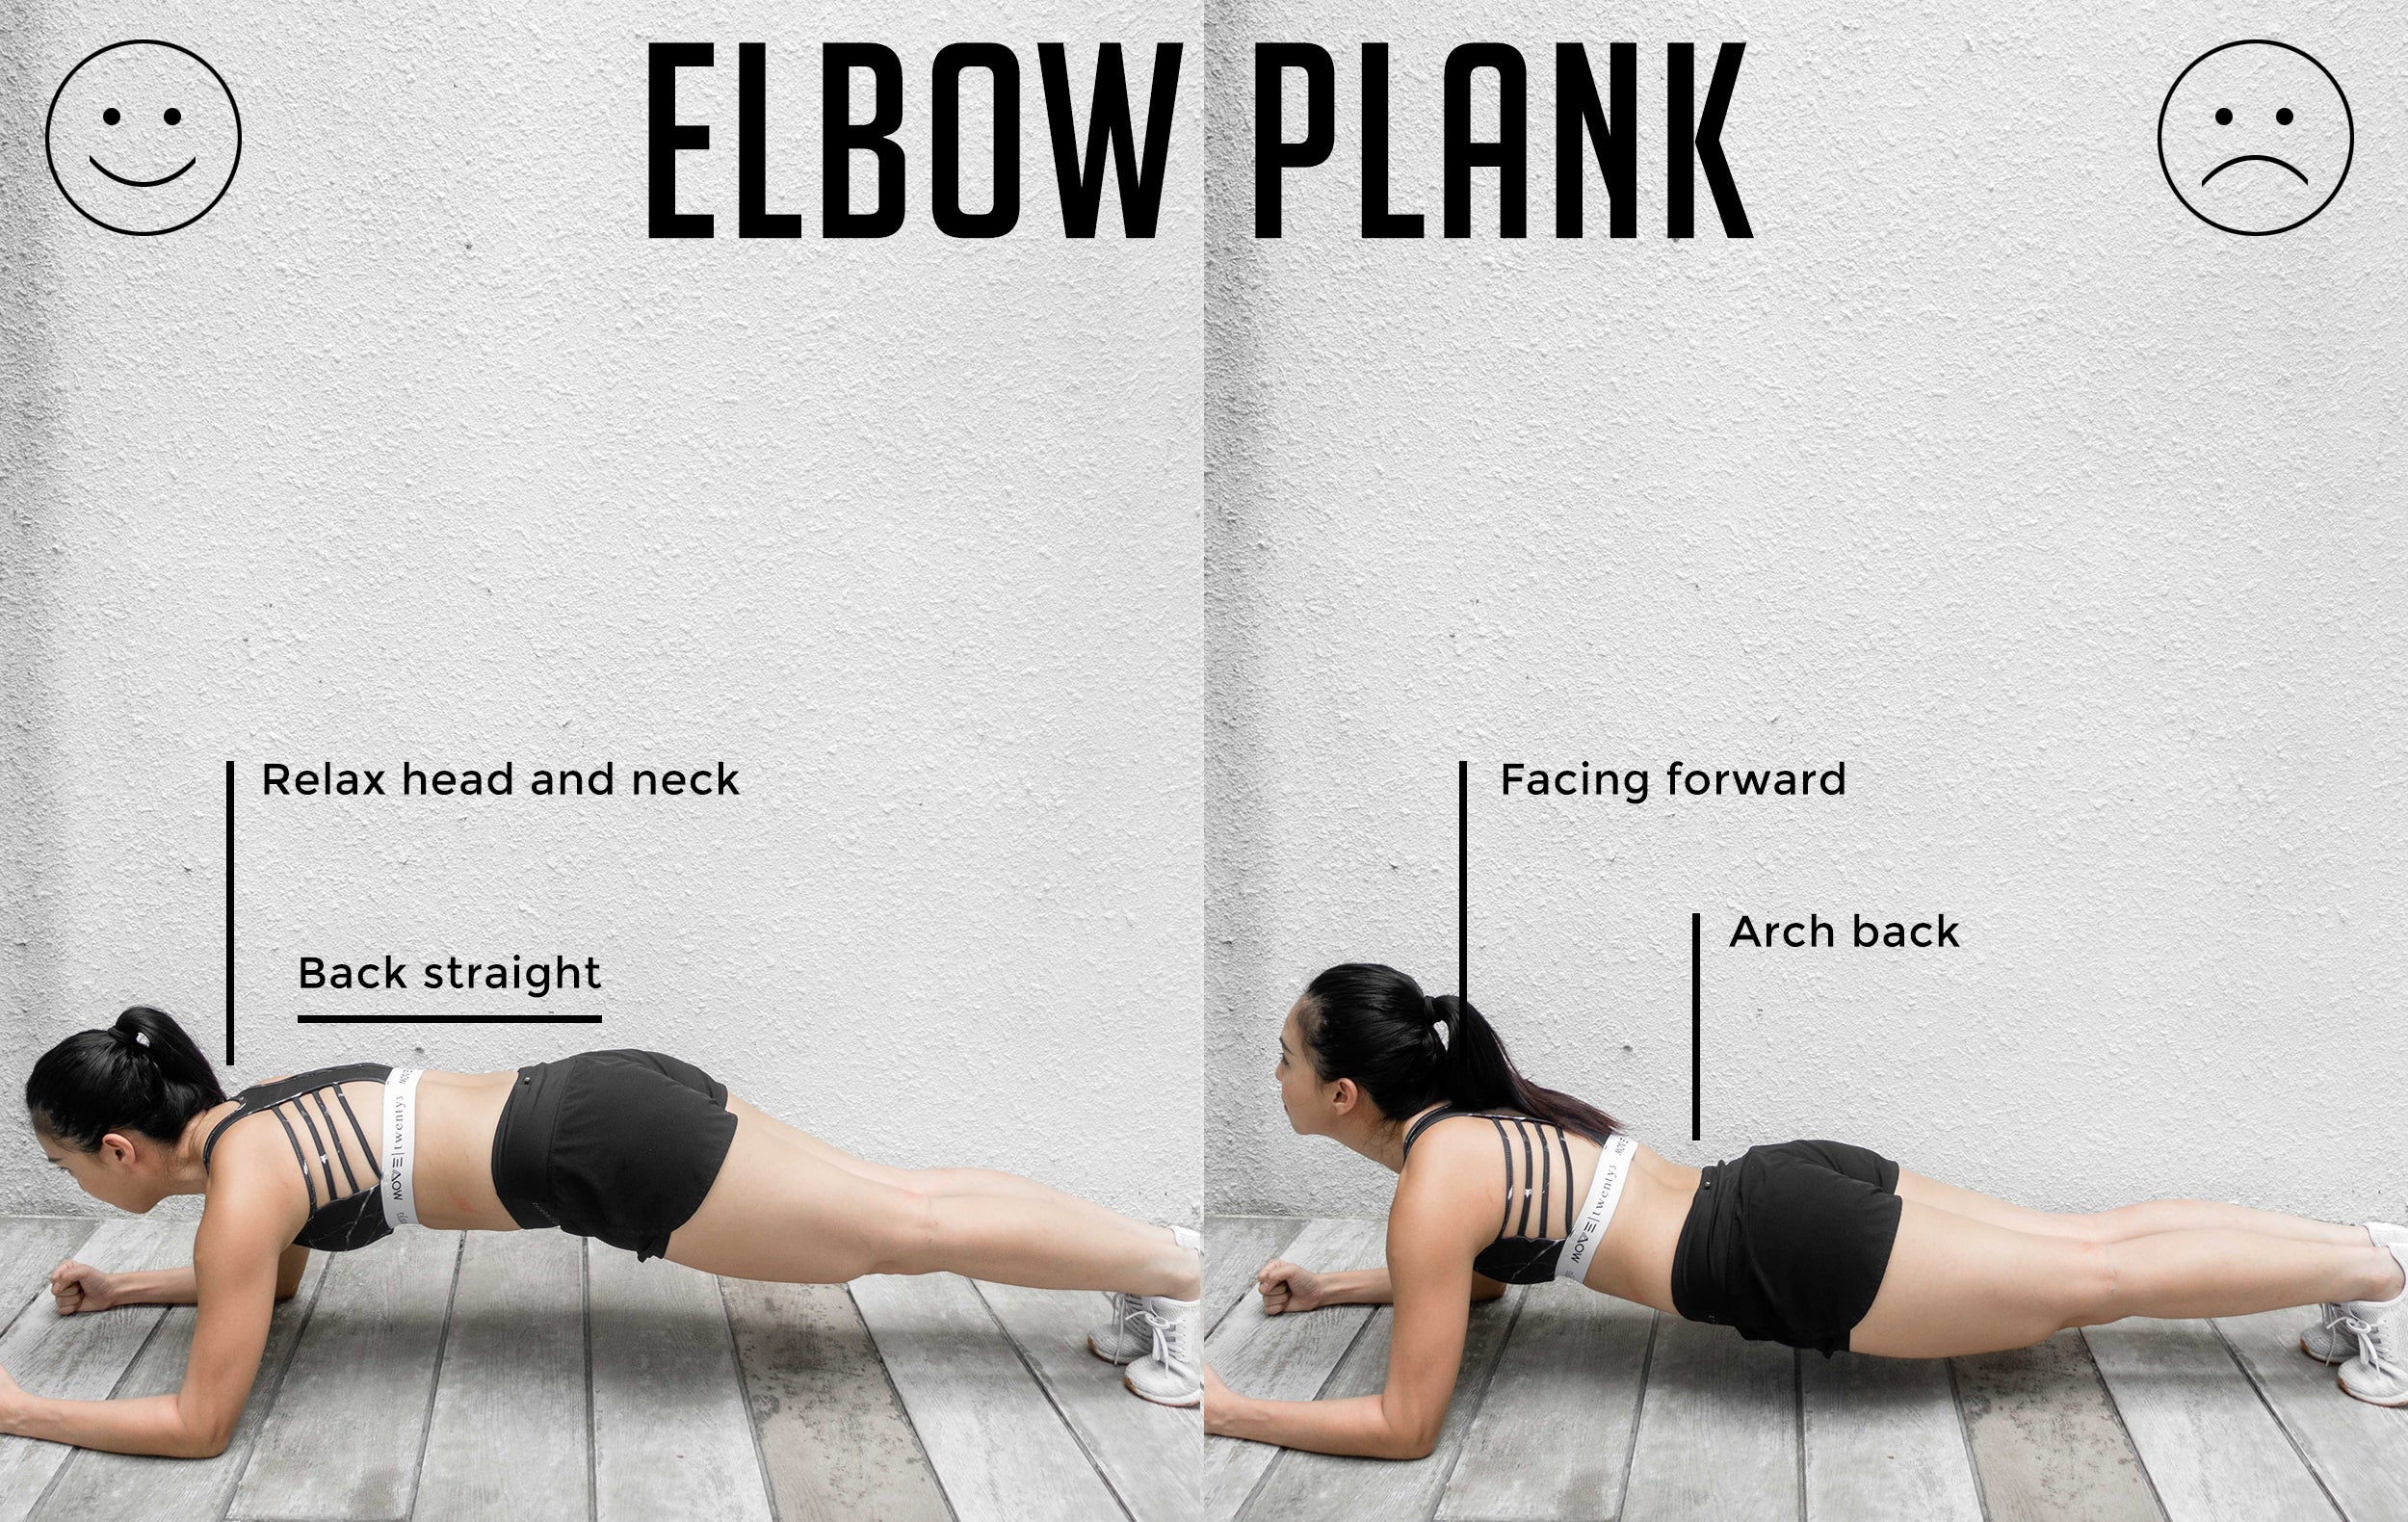 Elbow Plank Good Versus Bad Form